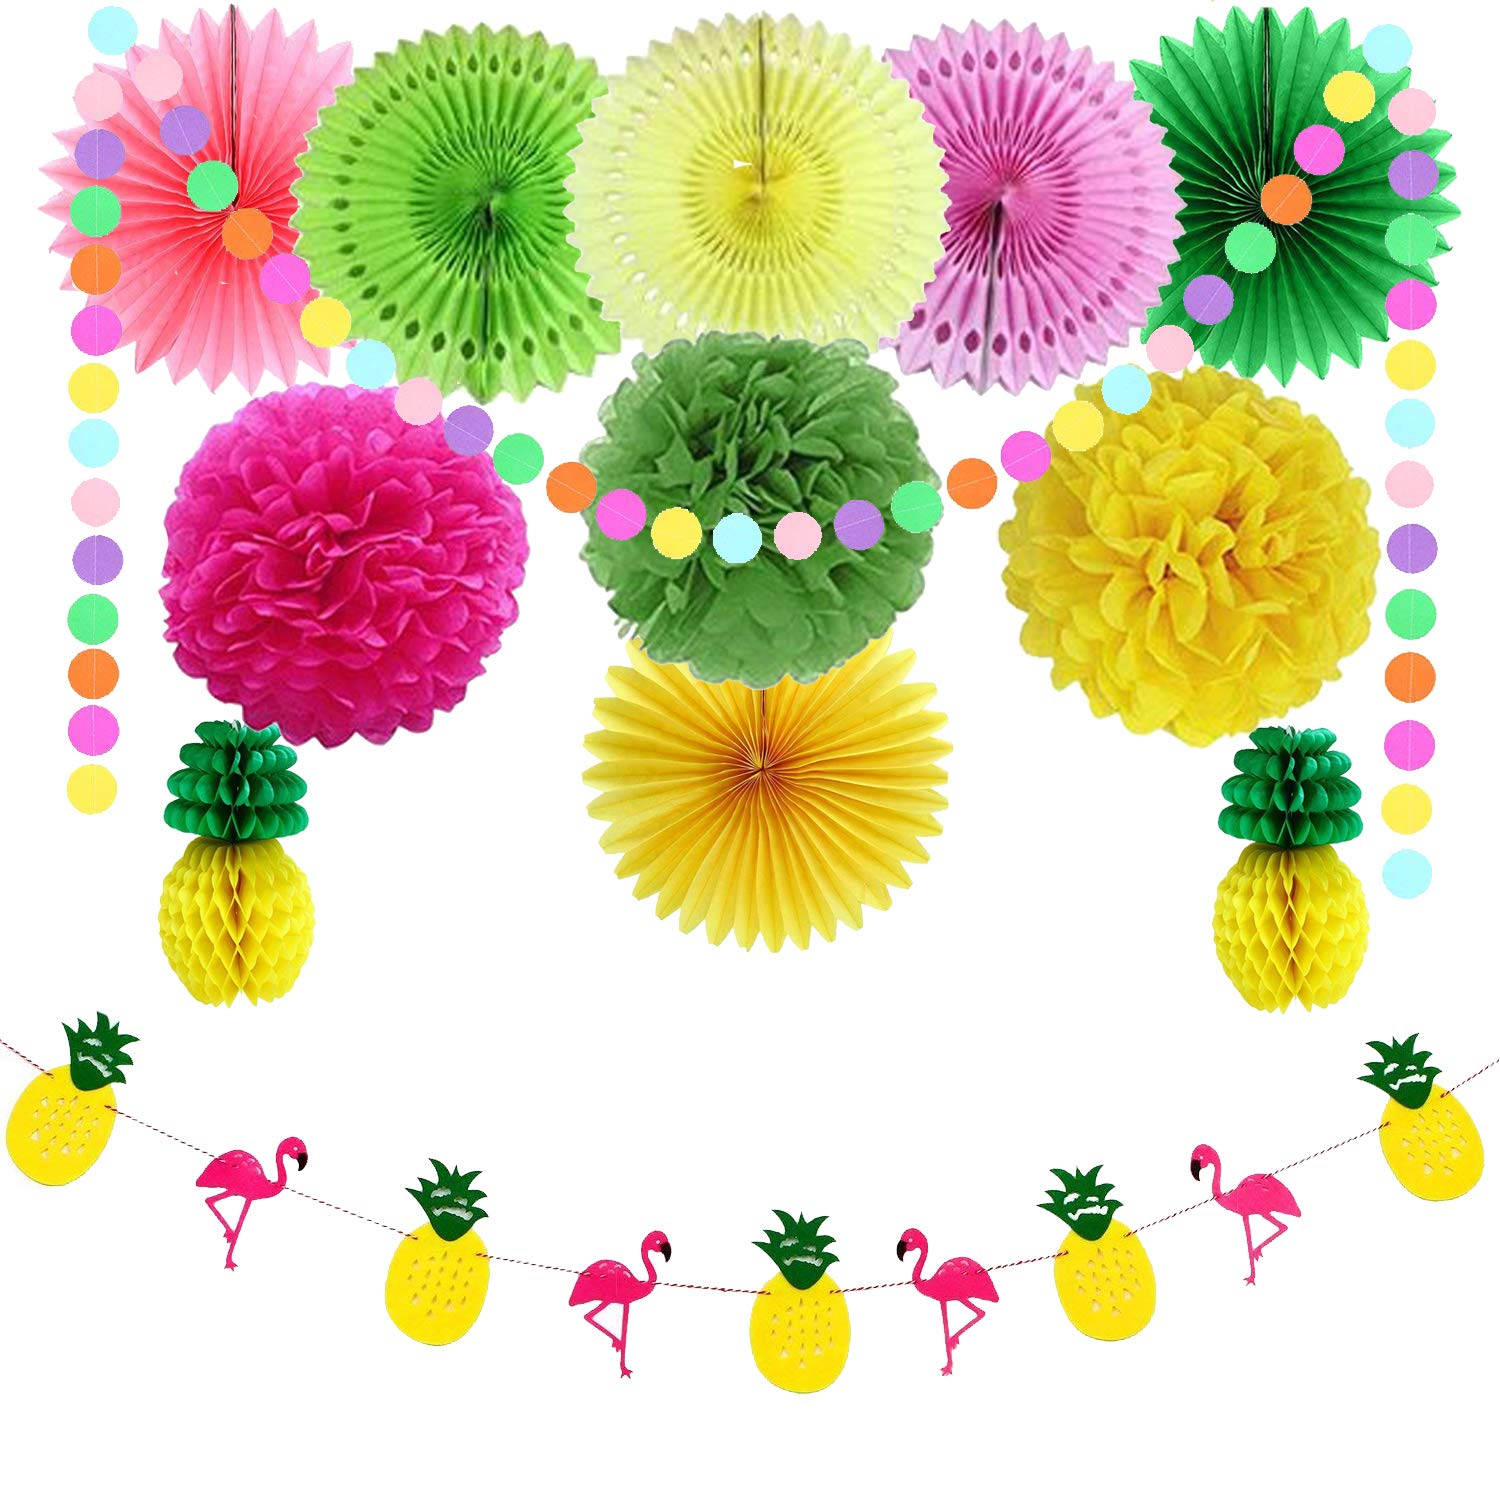 Fiesta Party Decorations, Mexican Cinco De Mayo Carnival Decoration- Pom Poms Paper Fans Honeycomb Balls Circle Dot Garland for Birthday Graduation Baby Shower Wedding Home Decoration(29 PES) (Set Ⅰ) Bwealthest